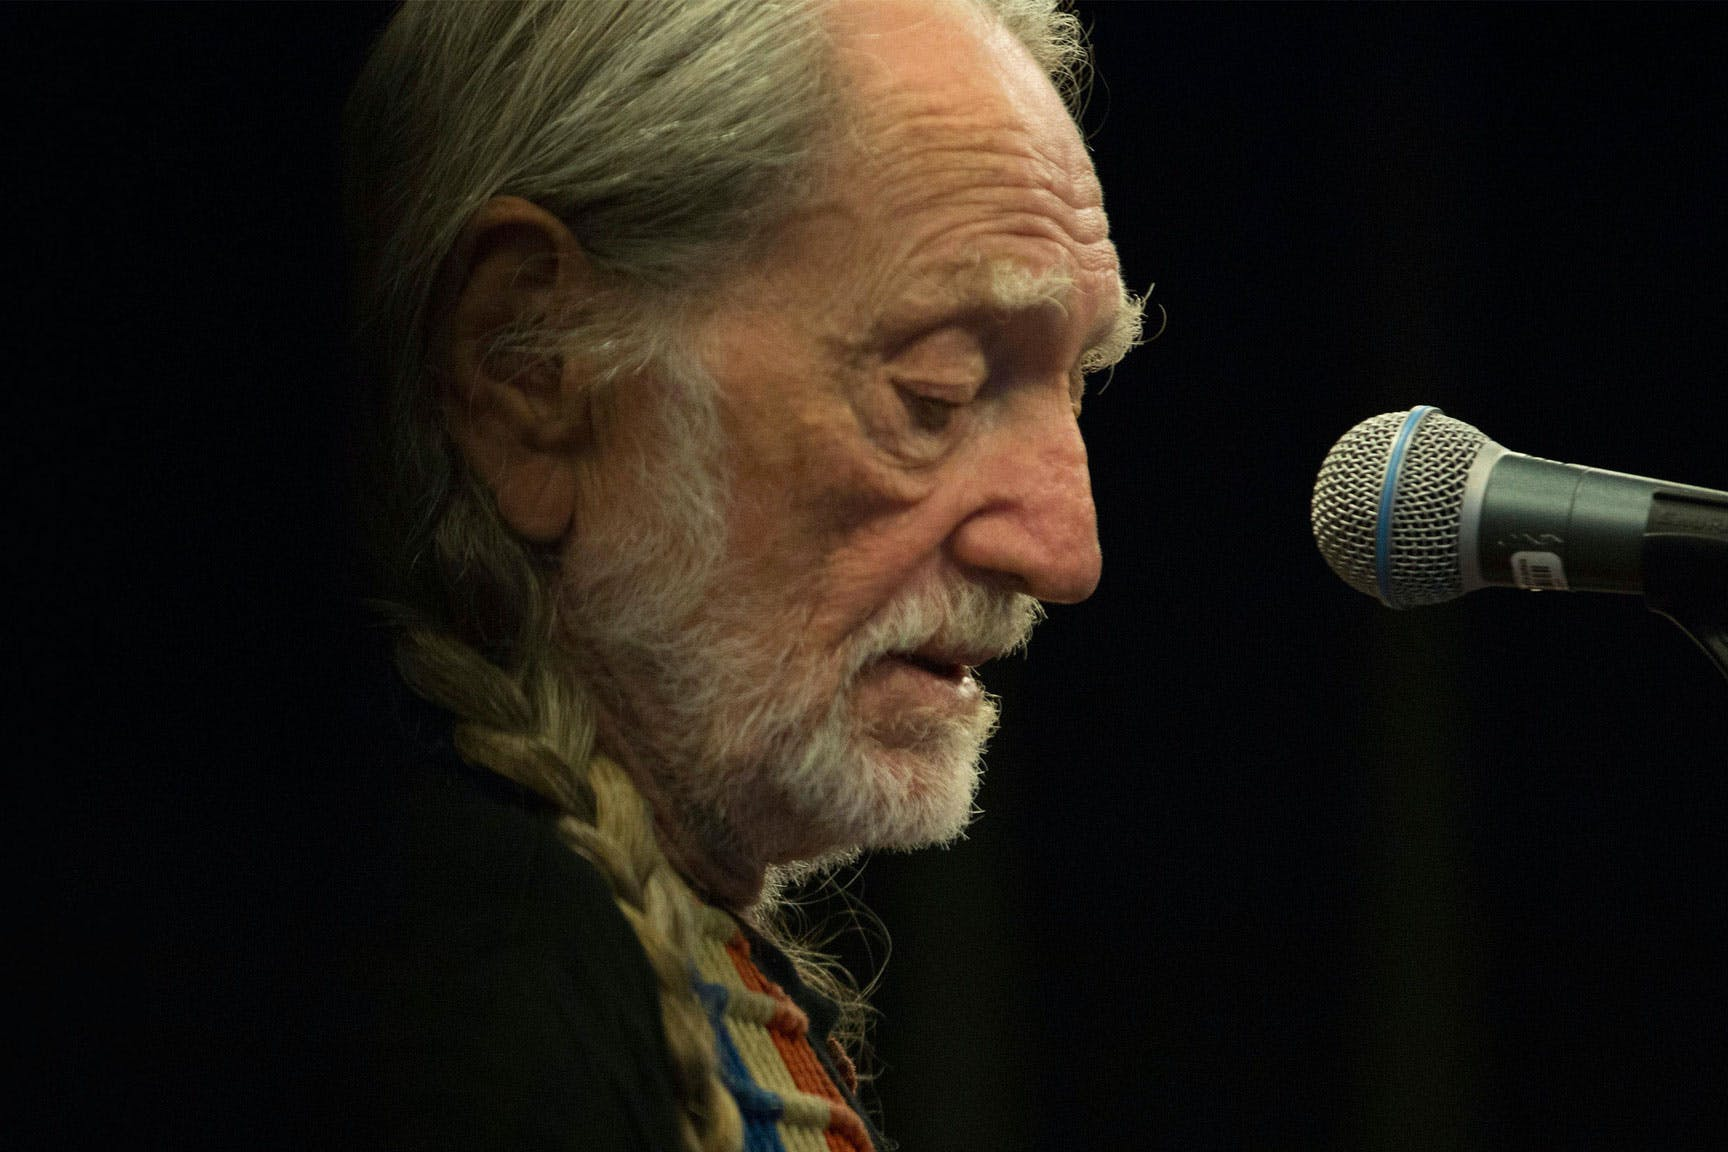 willie-nelson-smart-financial-centre-sugar-land-texas